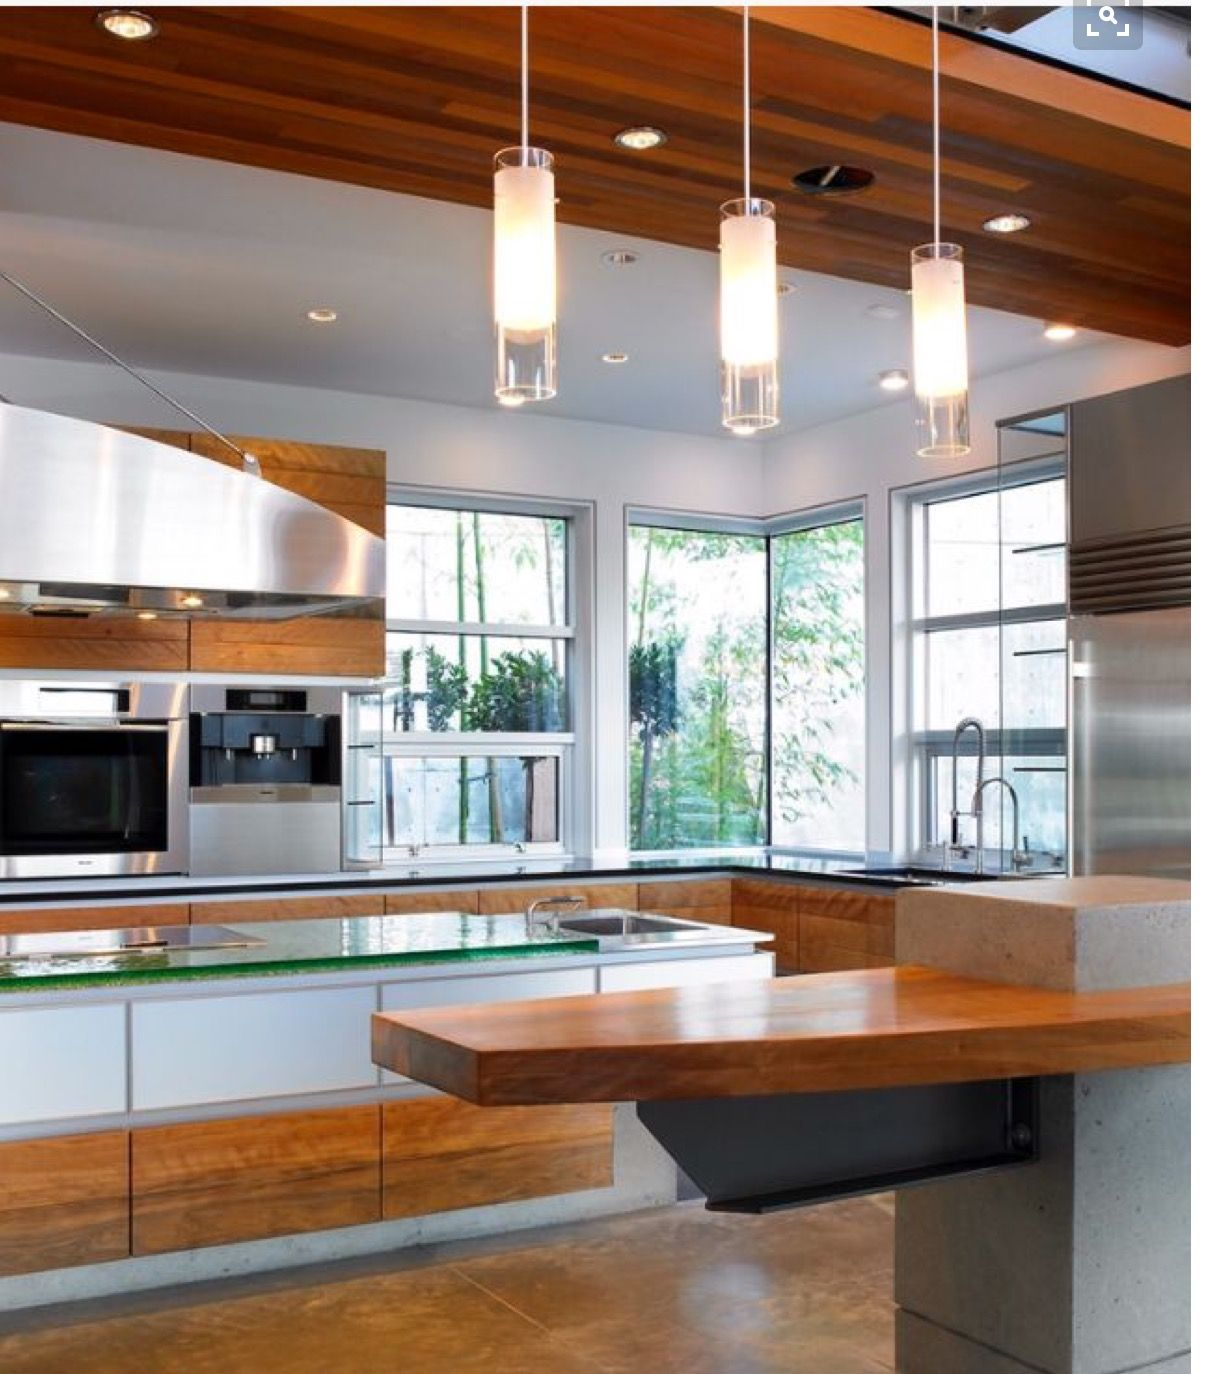 Mixed Materials Cabinets Pendant Lights Jutting Countertop Kitchen Design Contemporary Kitchen Contemporary Kitchen Design